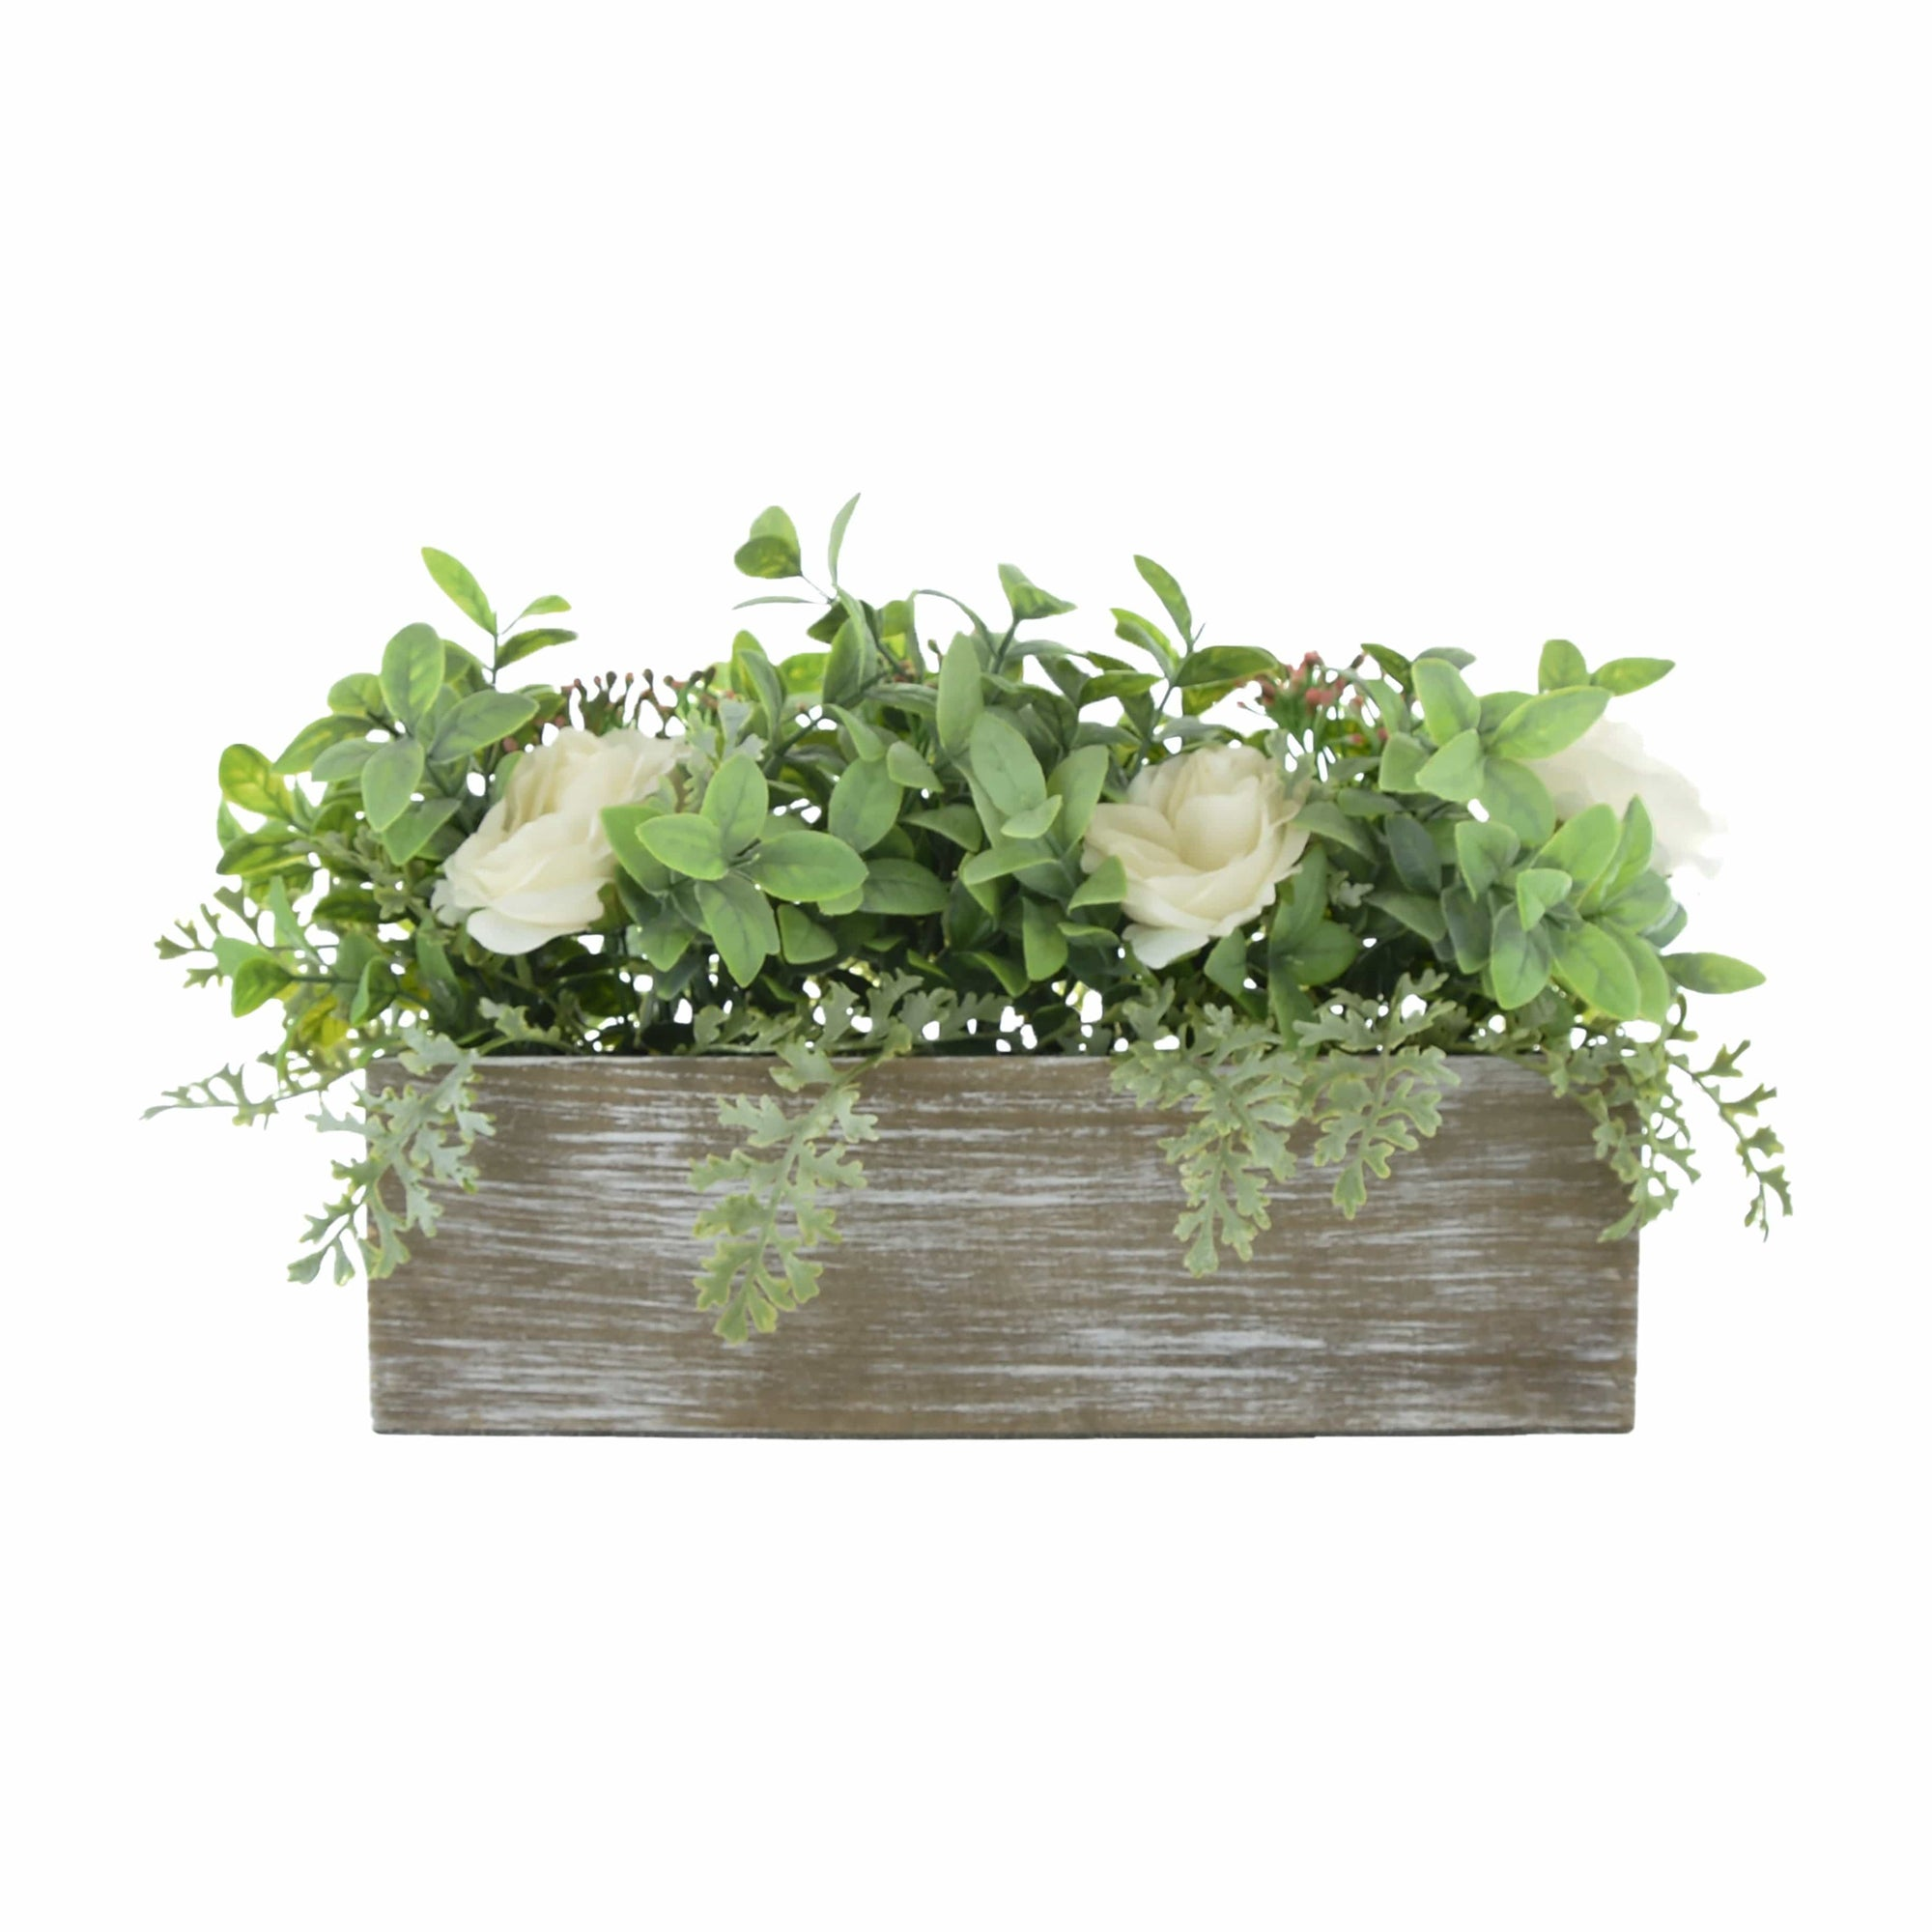 Candlelight Home Artificial Plants & Flowers Artificial White Roses and Leaves in Wooden Box 25cm 4PK